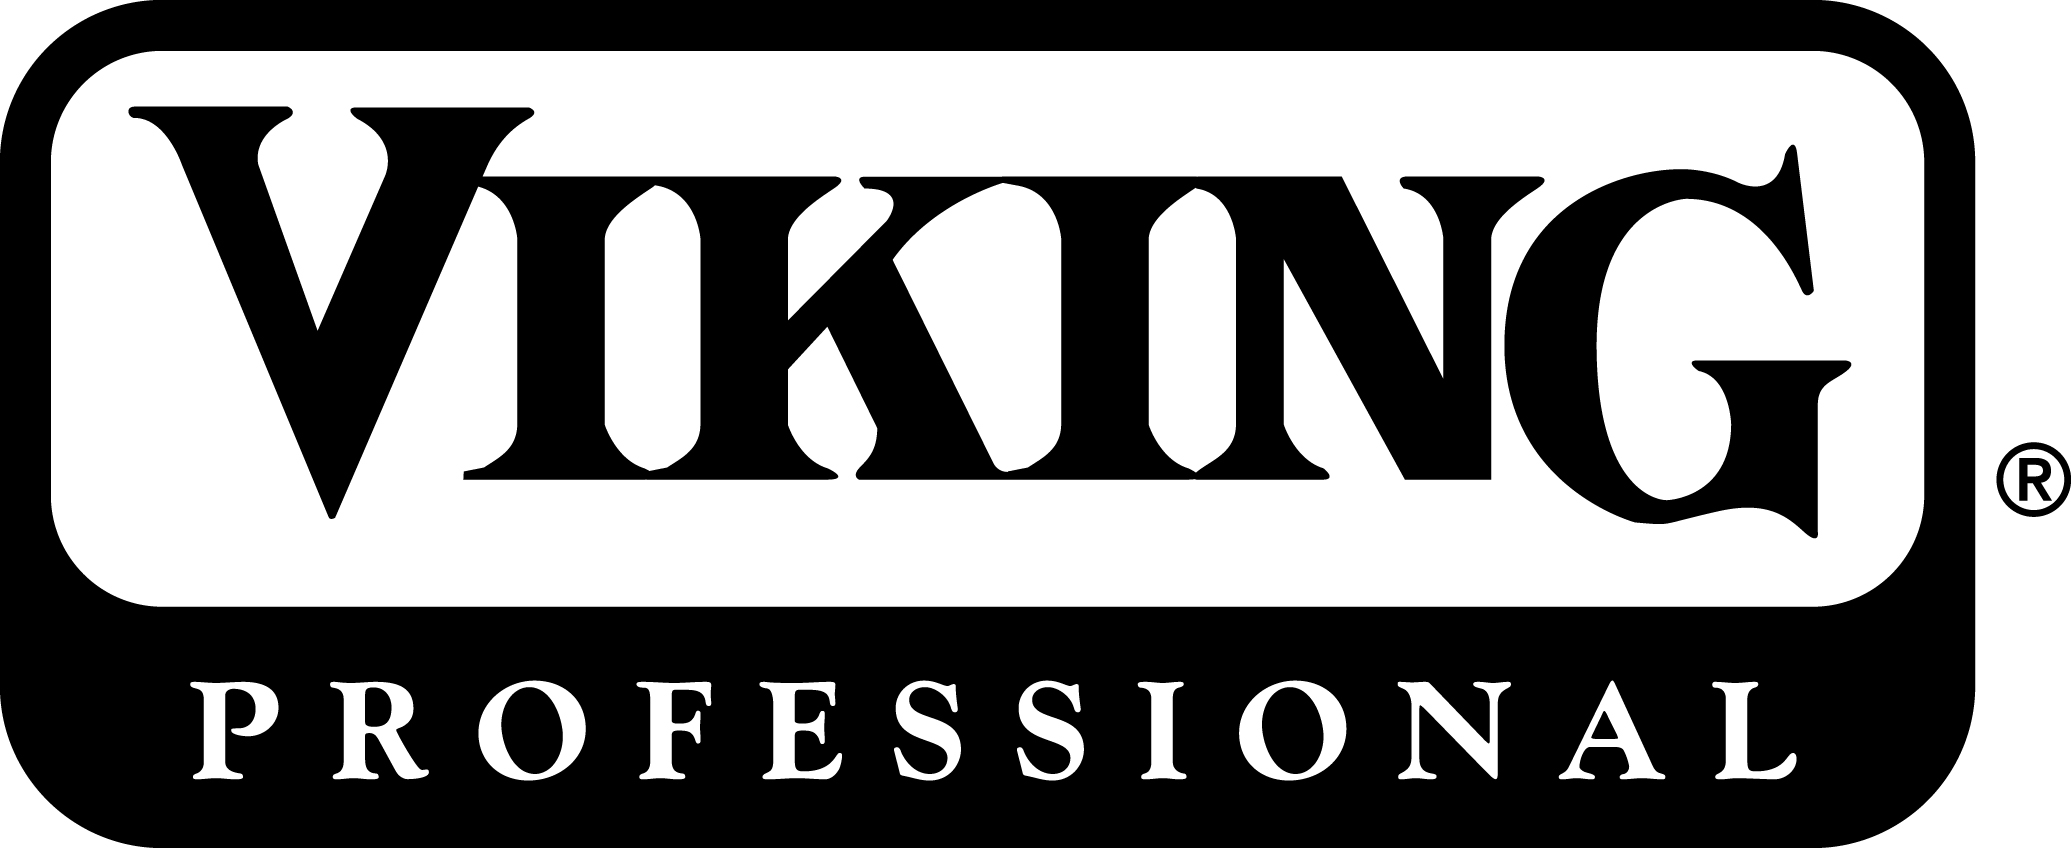 Viking Fridge Technician, Kenmore Refrigerator Repair